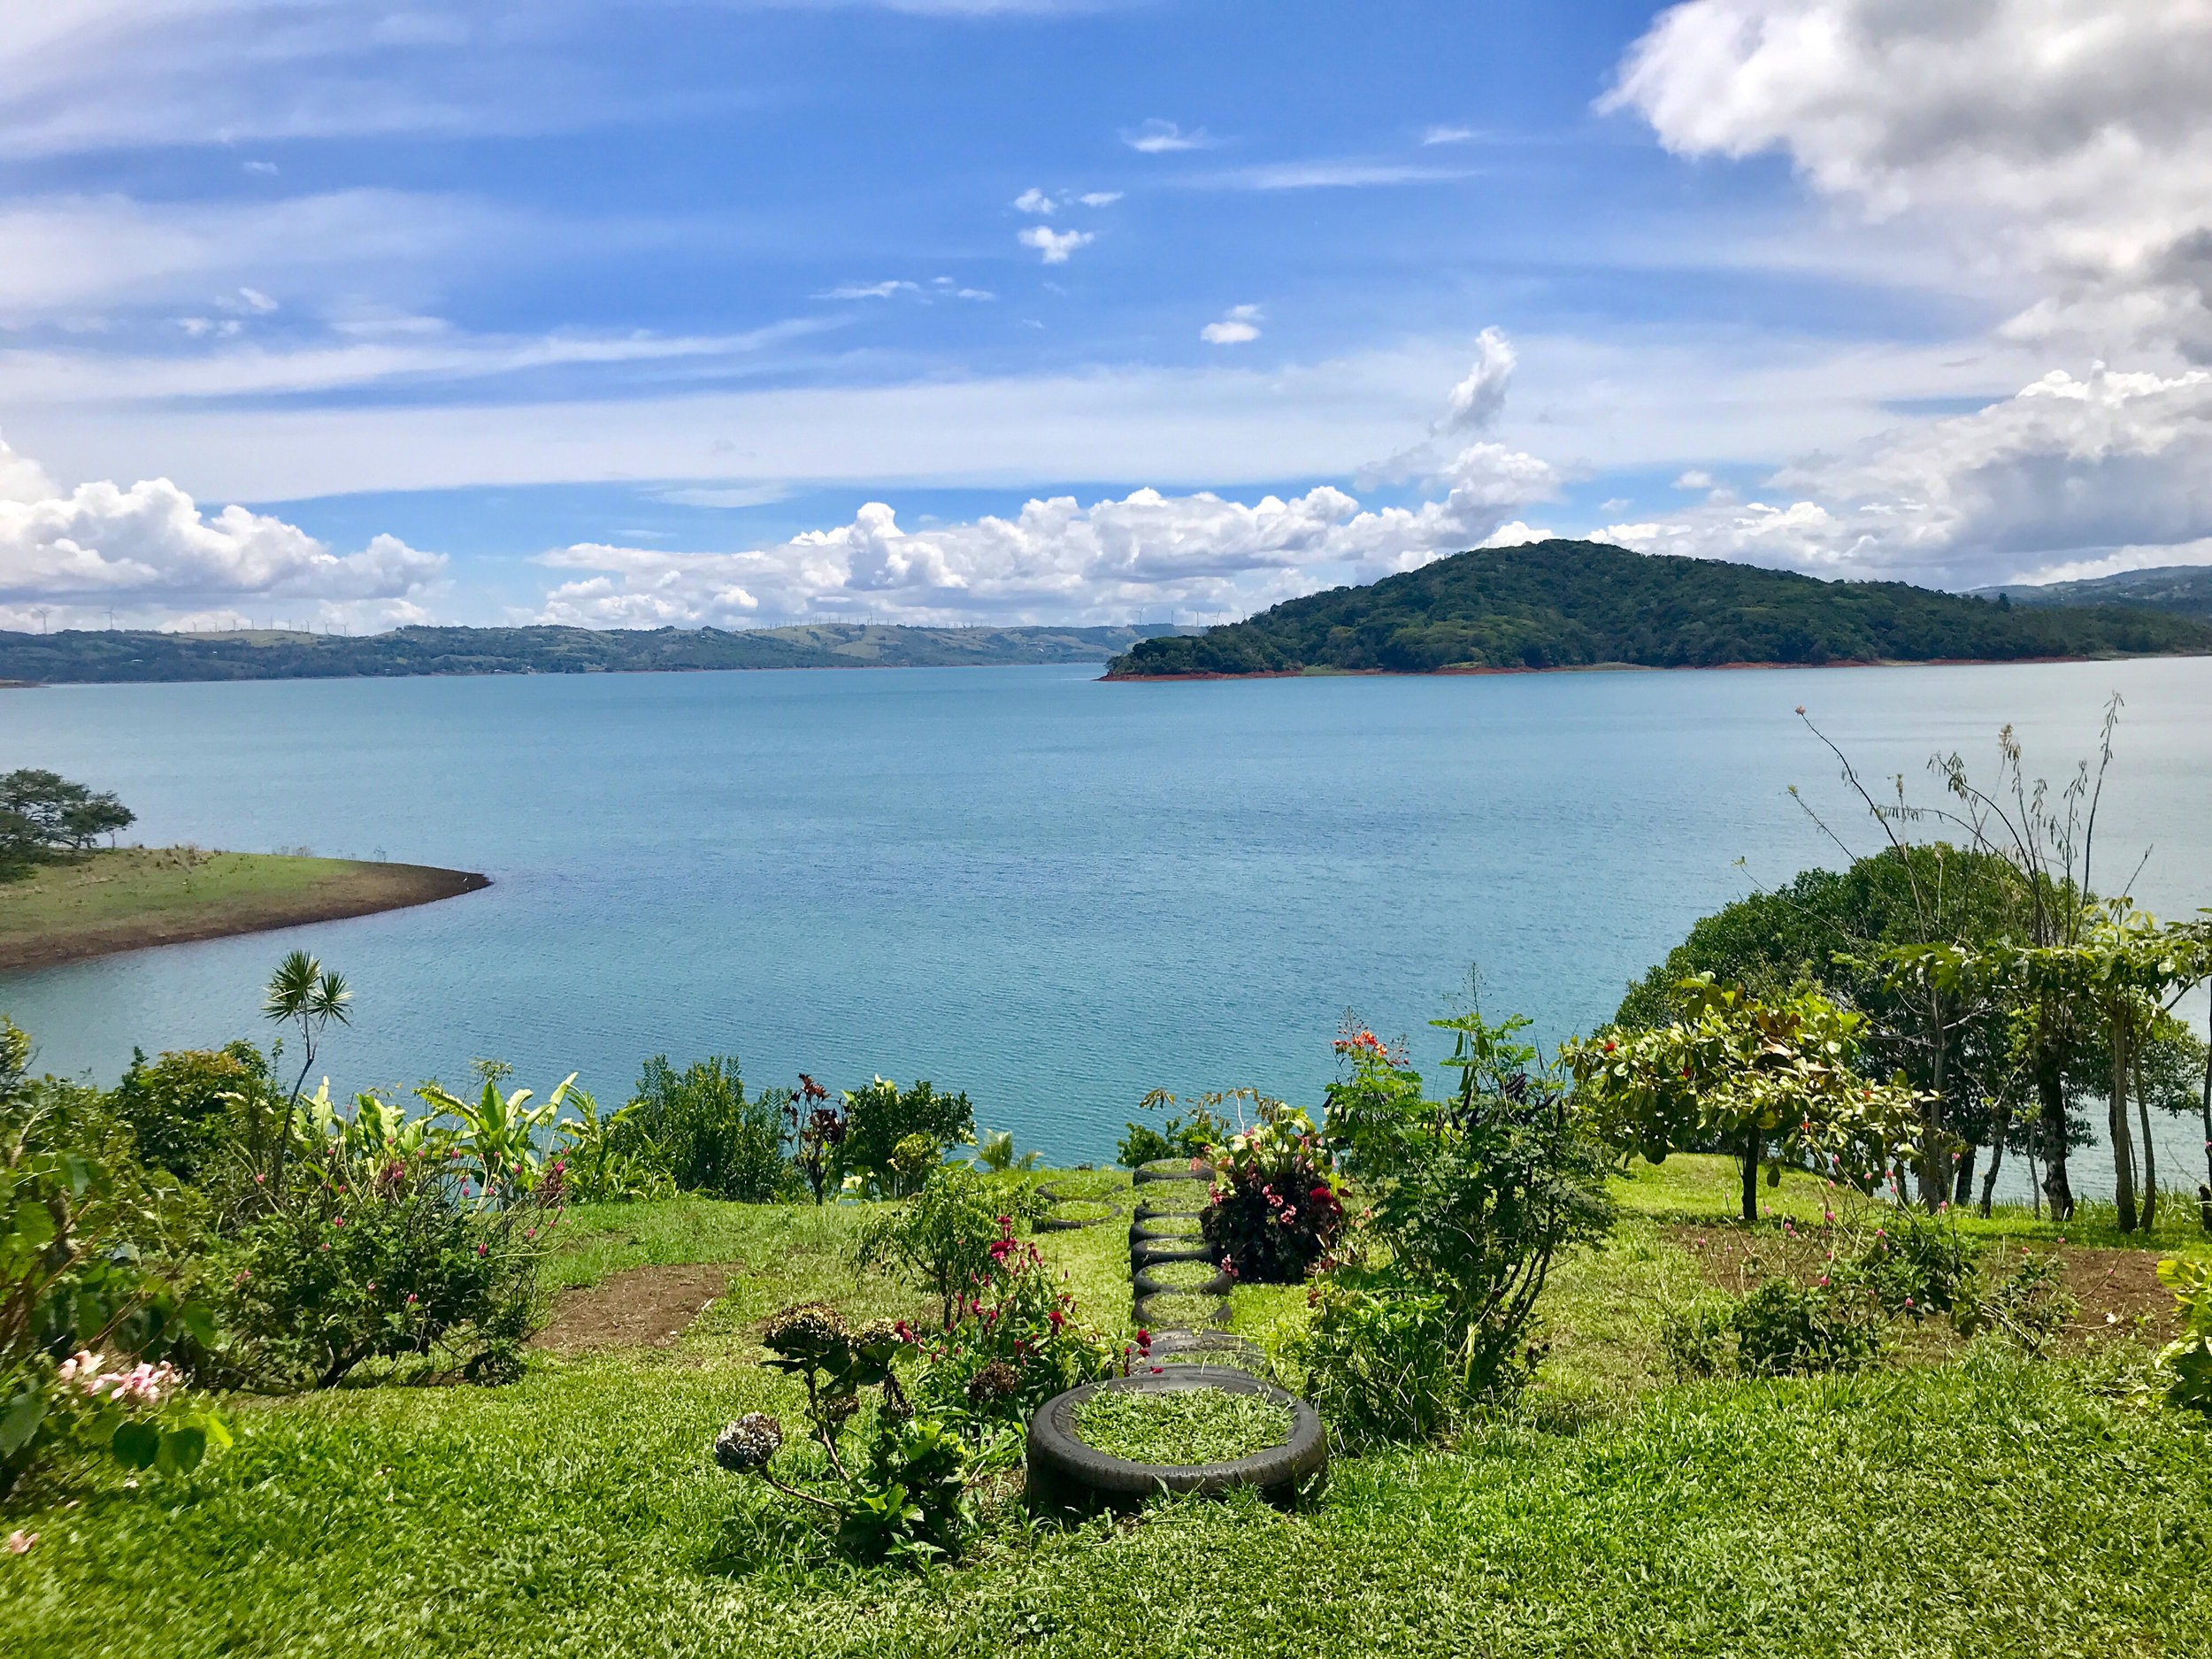 Lunch views of Lake Arenal